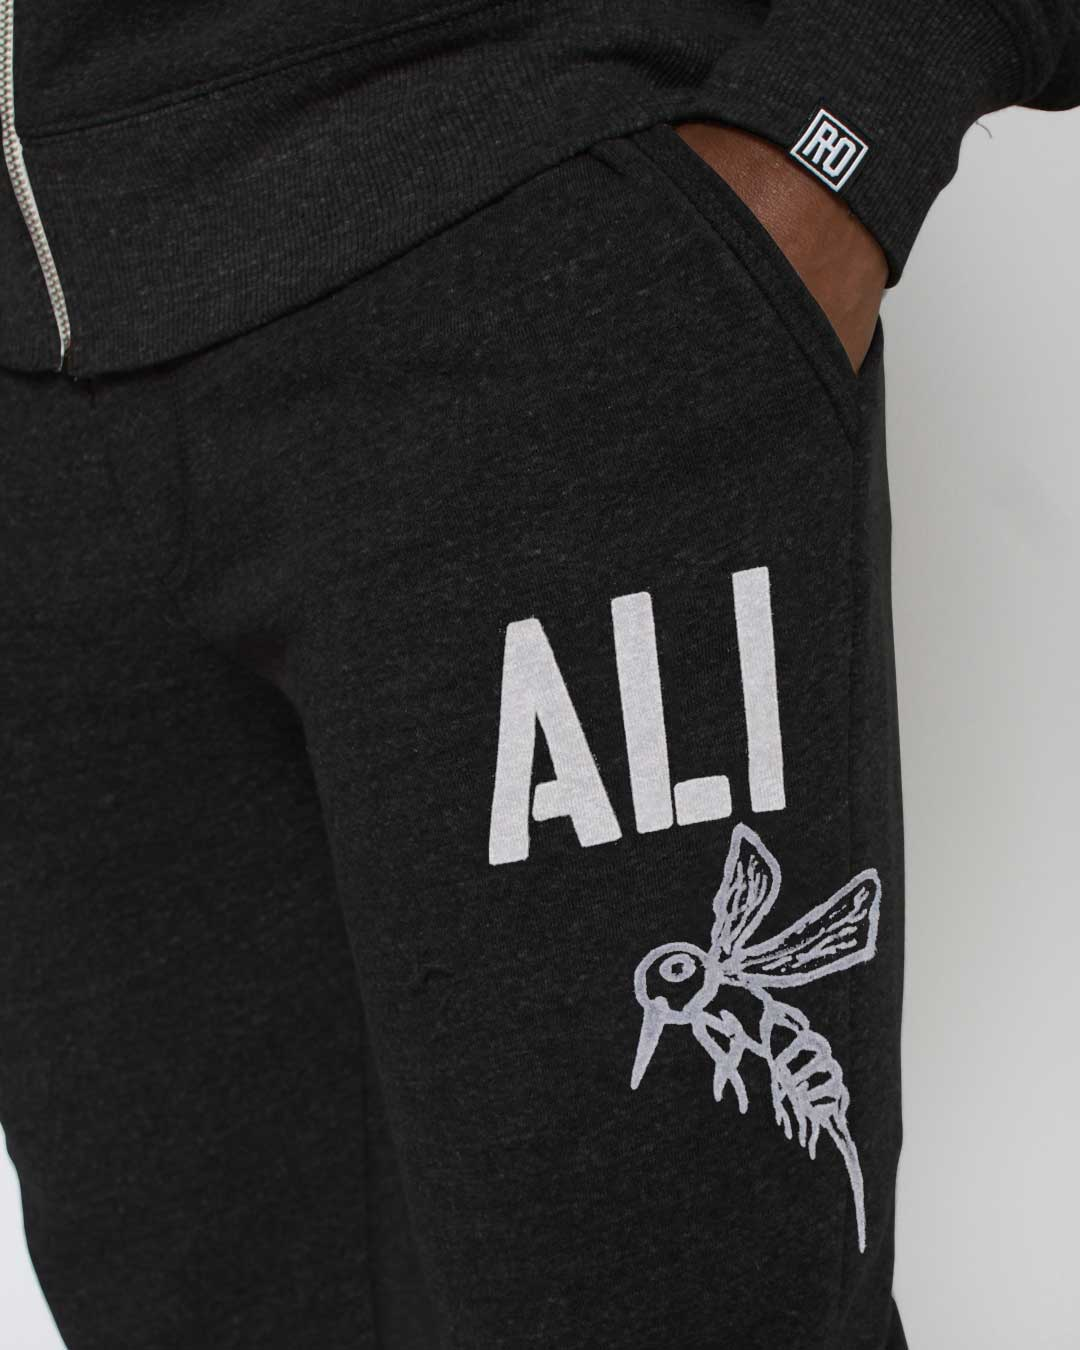 Ali Bee Sweatpants - Roots of Inc dba Roots of Fight